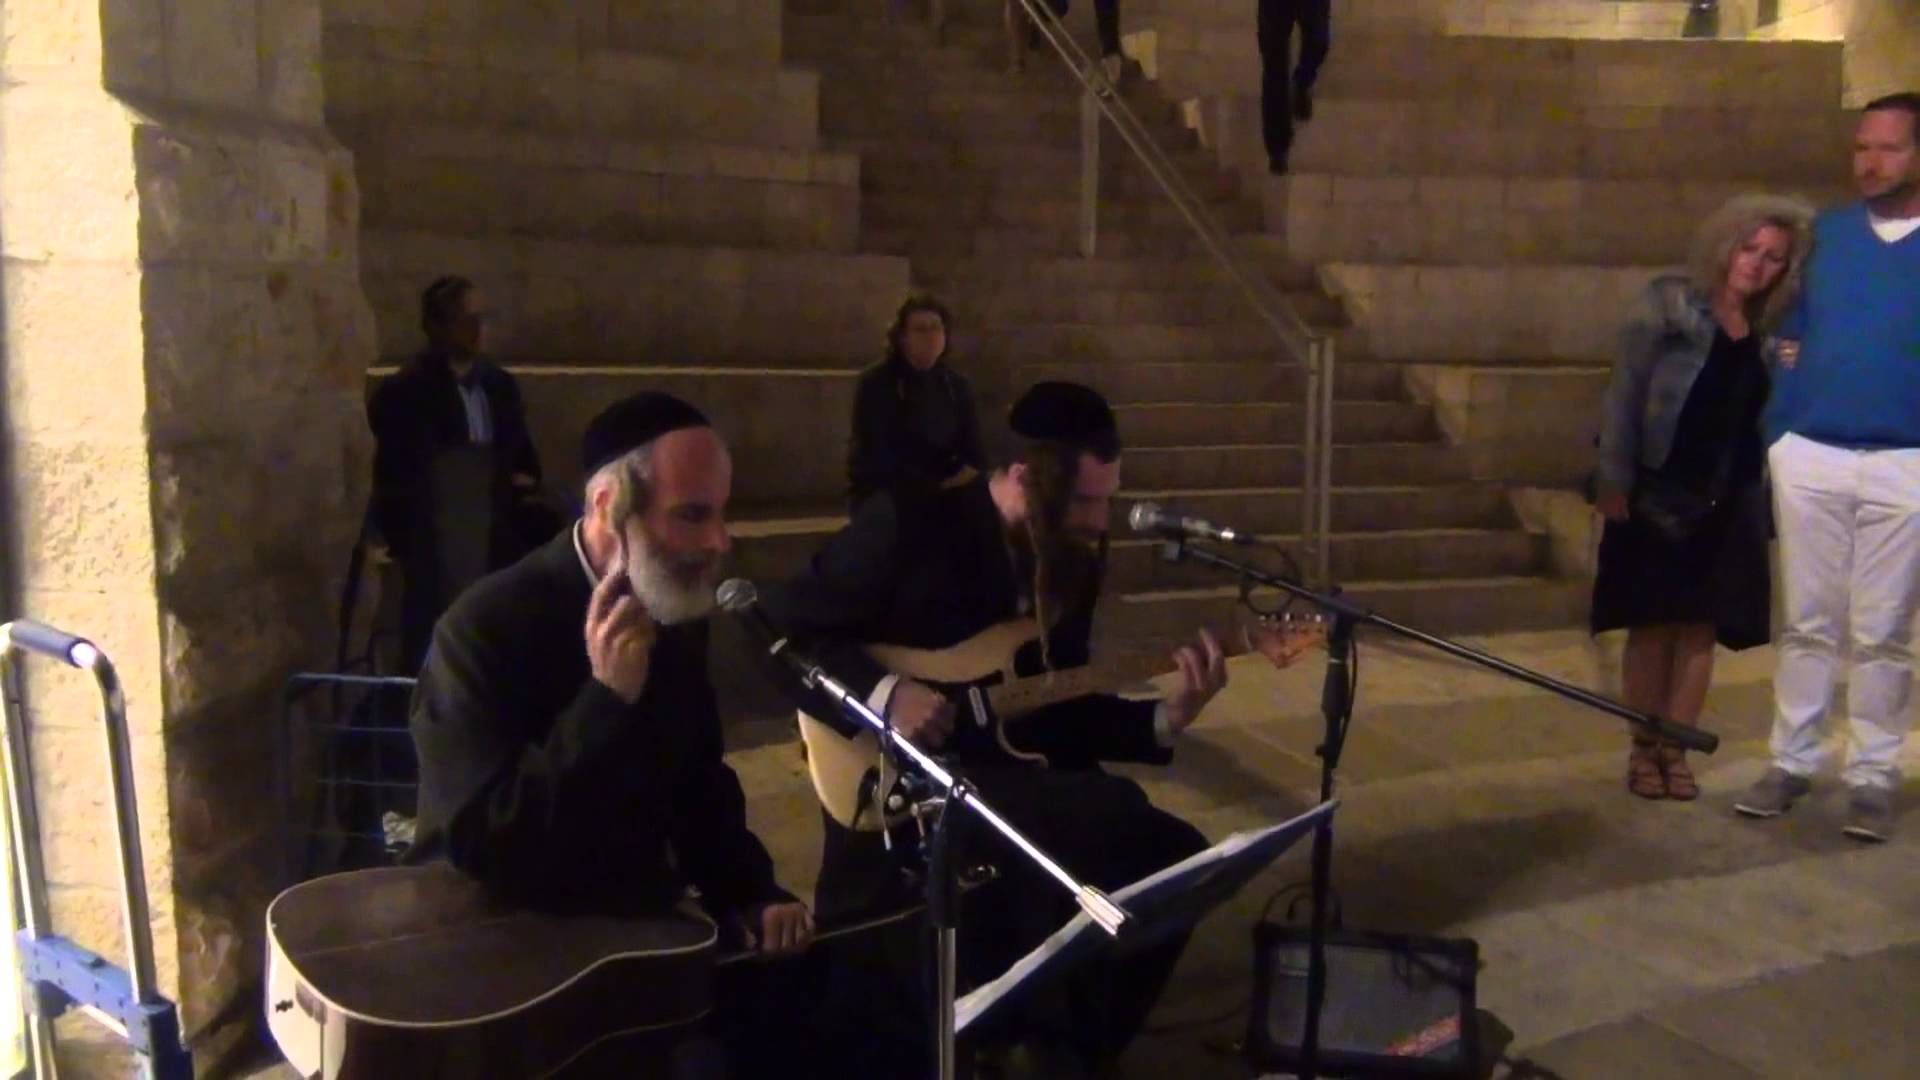 orthodox jewish musicians play clapton in the jerusalem s mall 5